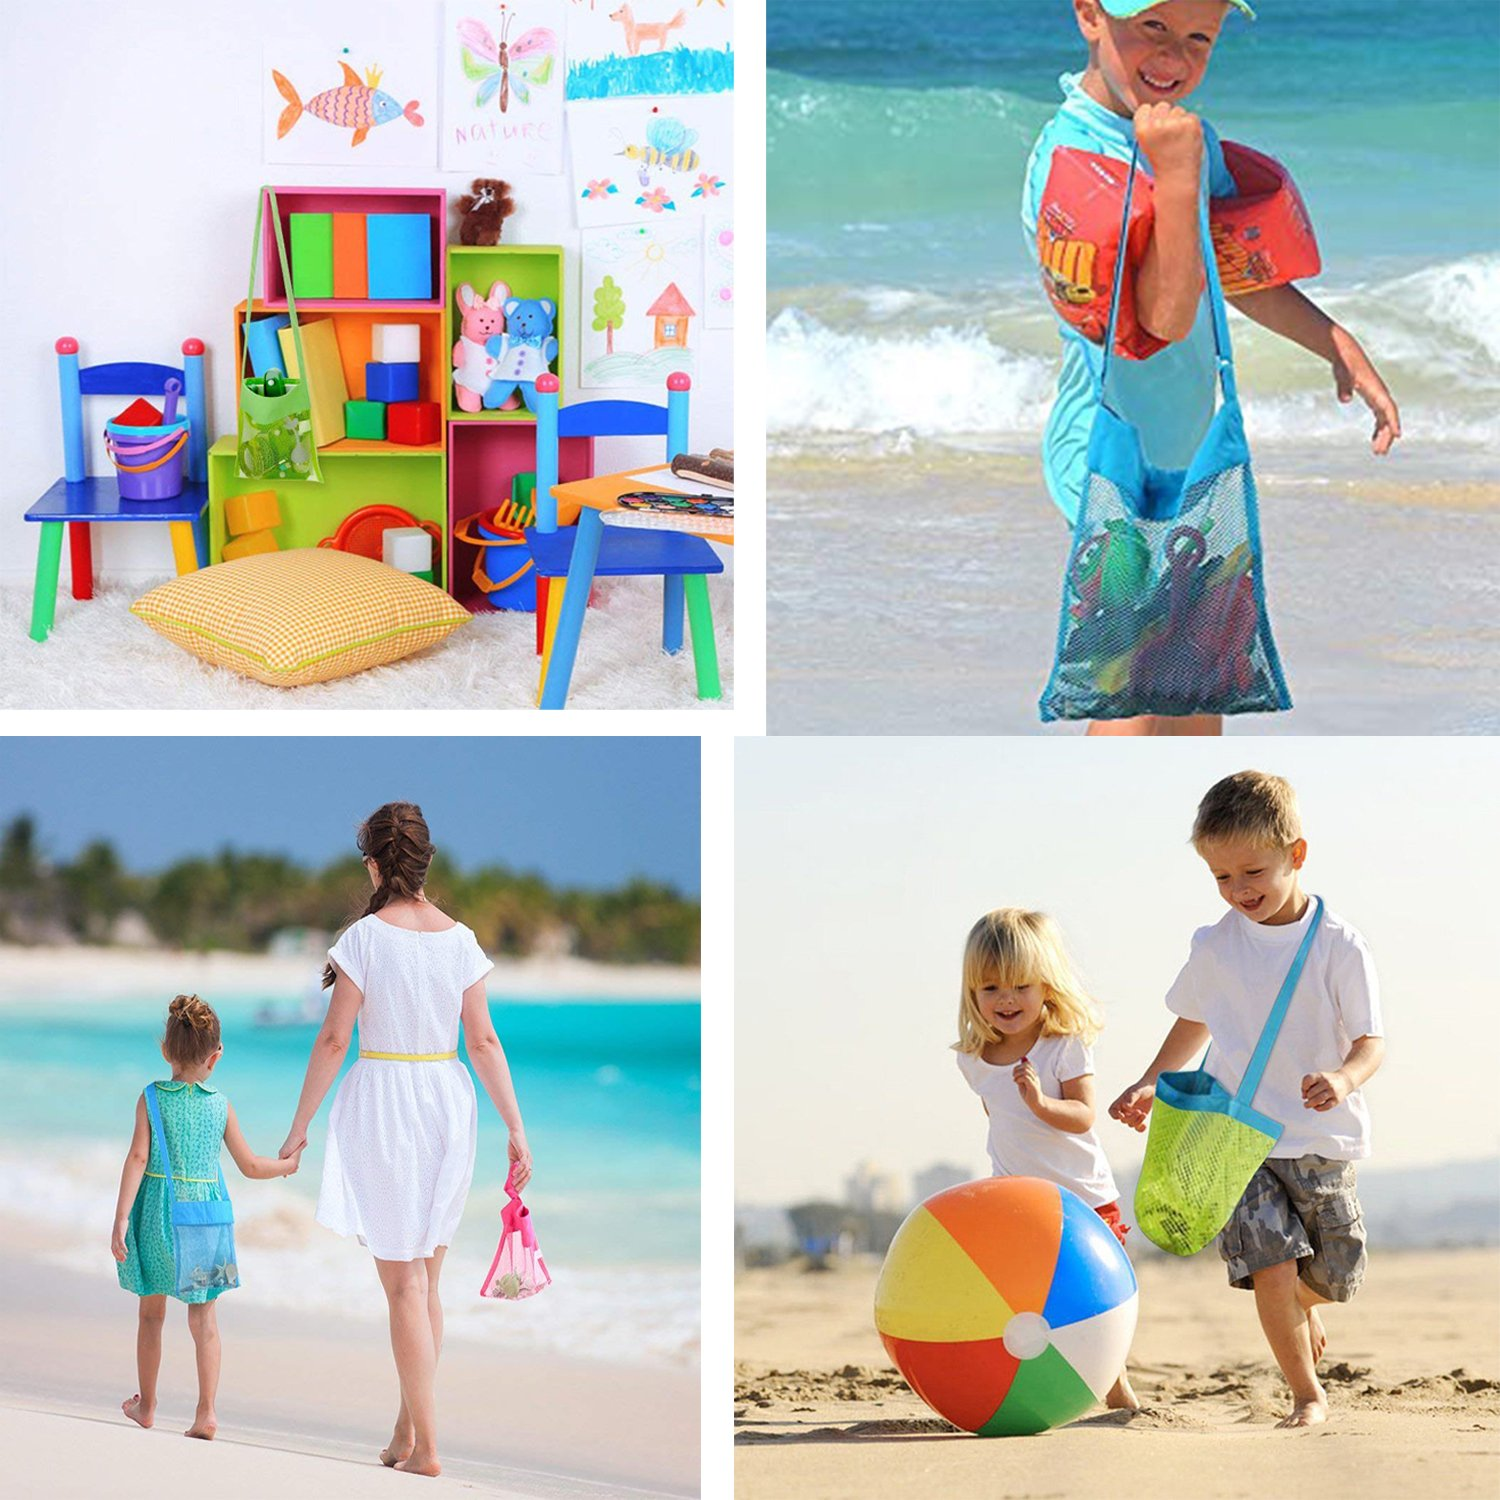 """Bylove 5 Pieces Colorful Mesh Beach Bags Breathable Sea Shell Bags Toy Storage Bags with Adjustable Carrying Straps (5 pieces, 9.8"""" x 9.4"""") by Bylove (Image #5)"""